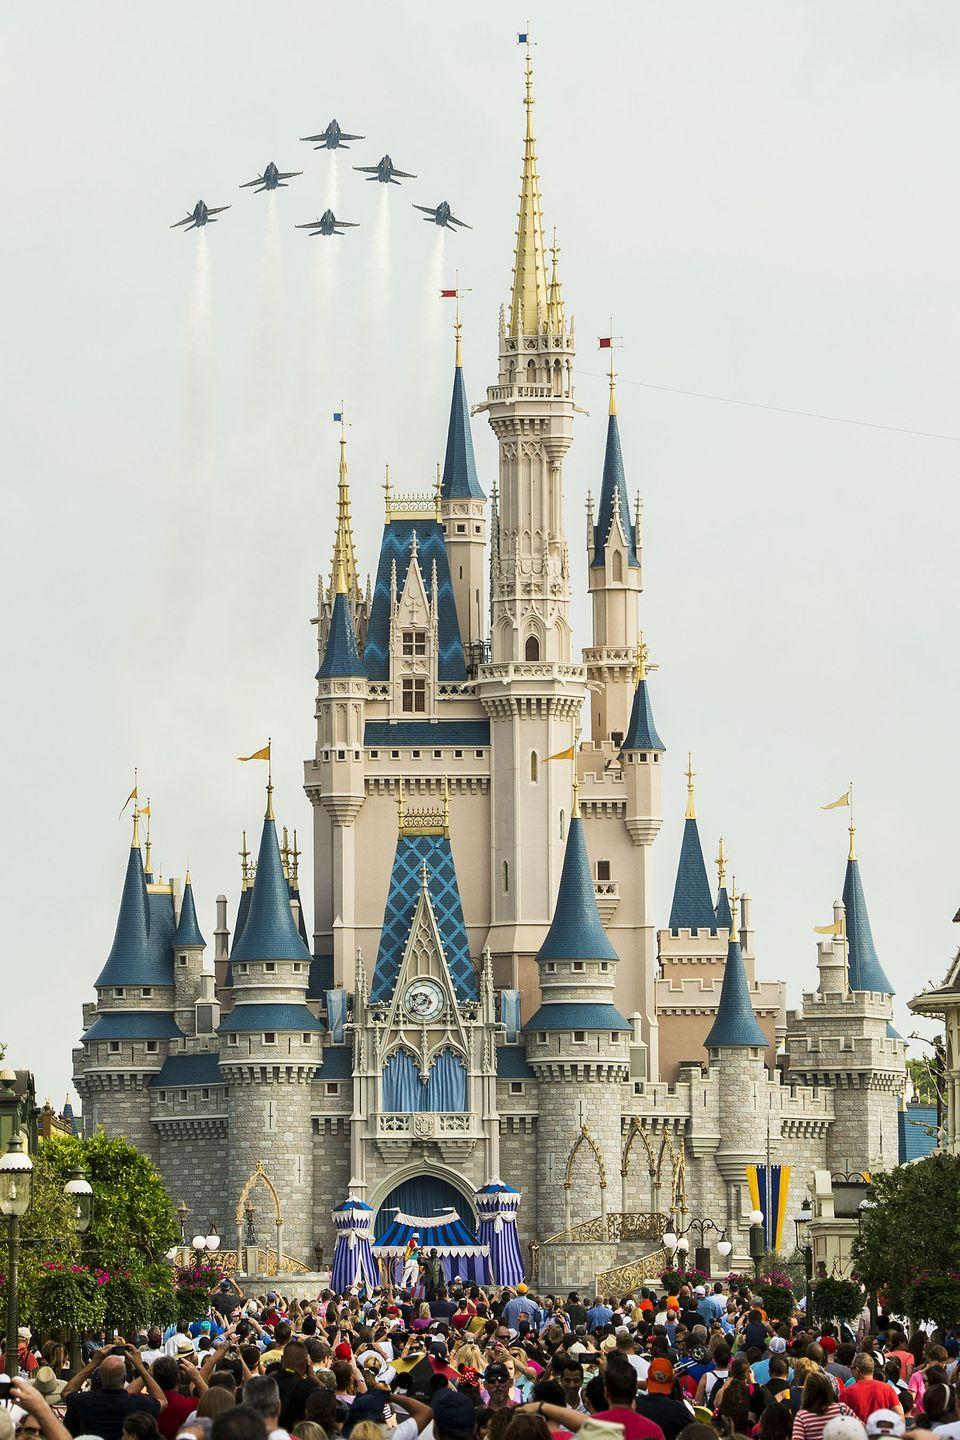 """<p>If you've ever been to Magic Kingdom, do you recall where the castle was located? Some, <a href=""""https://www.reddit.com/r/MandelaEffect/comments/3uyecb/disney_world_castle_at_front_of_the_park/"""" rel=""""nofollow noopener"""" target=""""_blank"""" data-ylk=""""slk:even one Orlando local on Reddit"""" class=""""link rapid-noclick-resp"""">even one Orlando local on Reddit</a>, clearly remember it being the entrance to the park. </p>"""